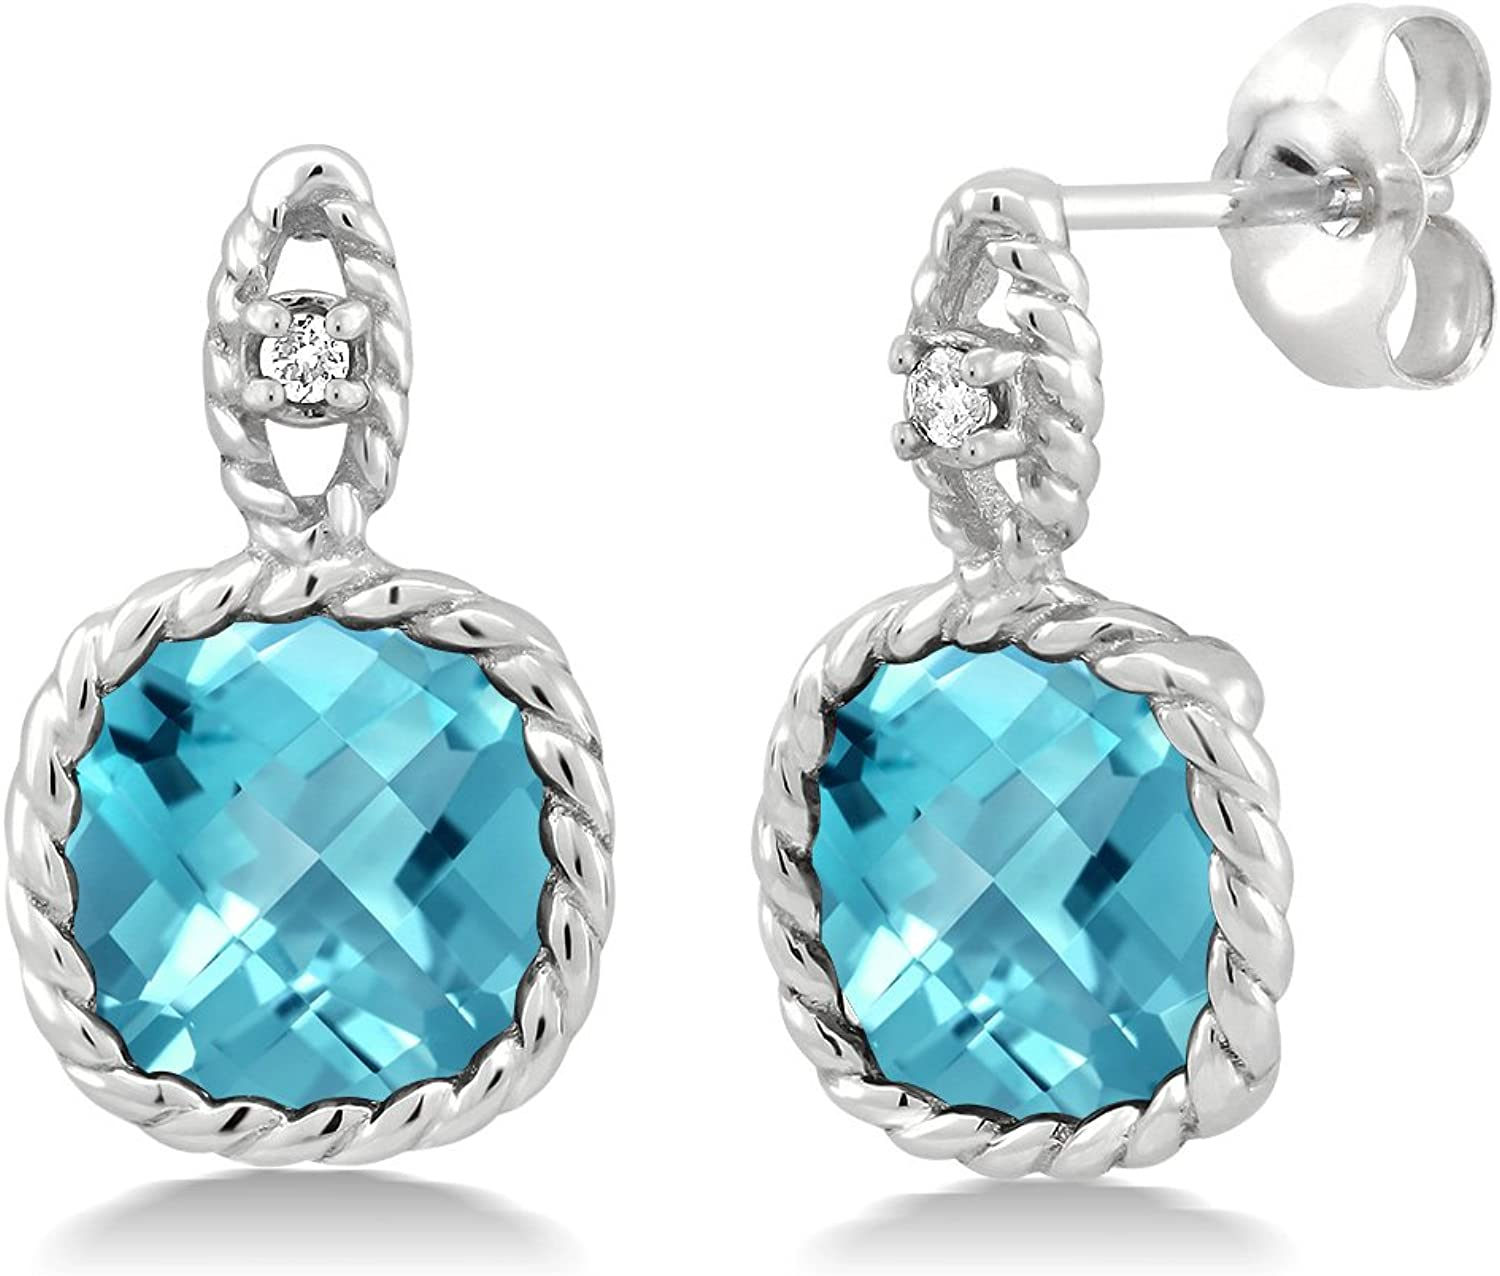 10K White gold 5.50 Ct 8mm Cushion Swiss bluee Topaz and Diamond Cable Earrings